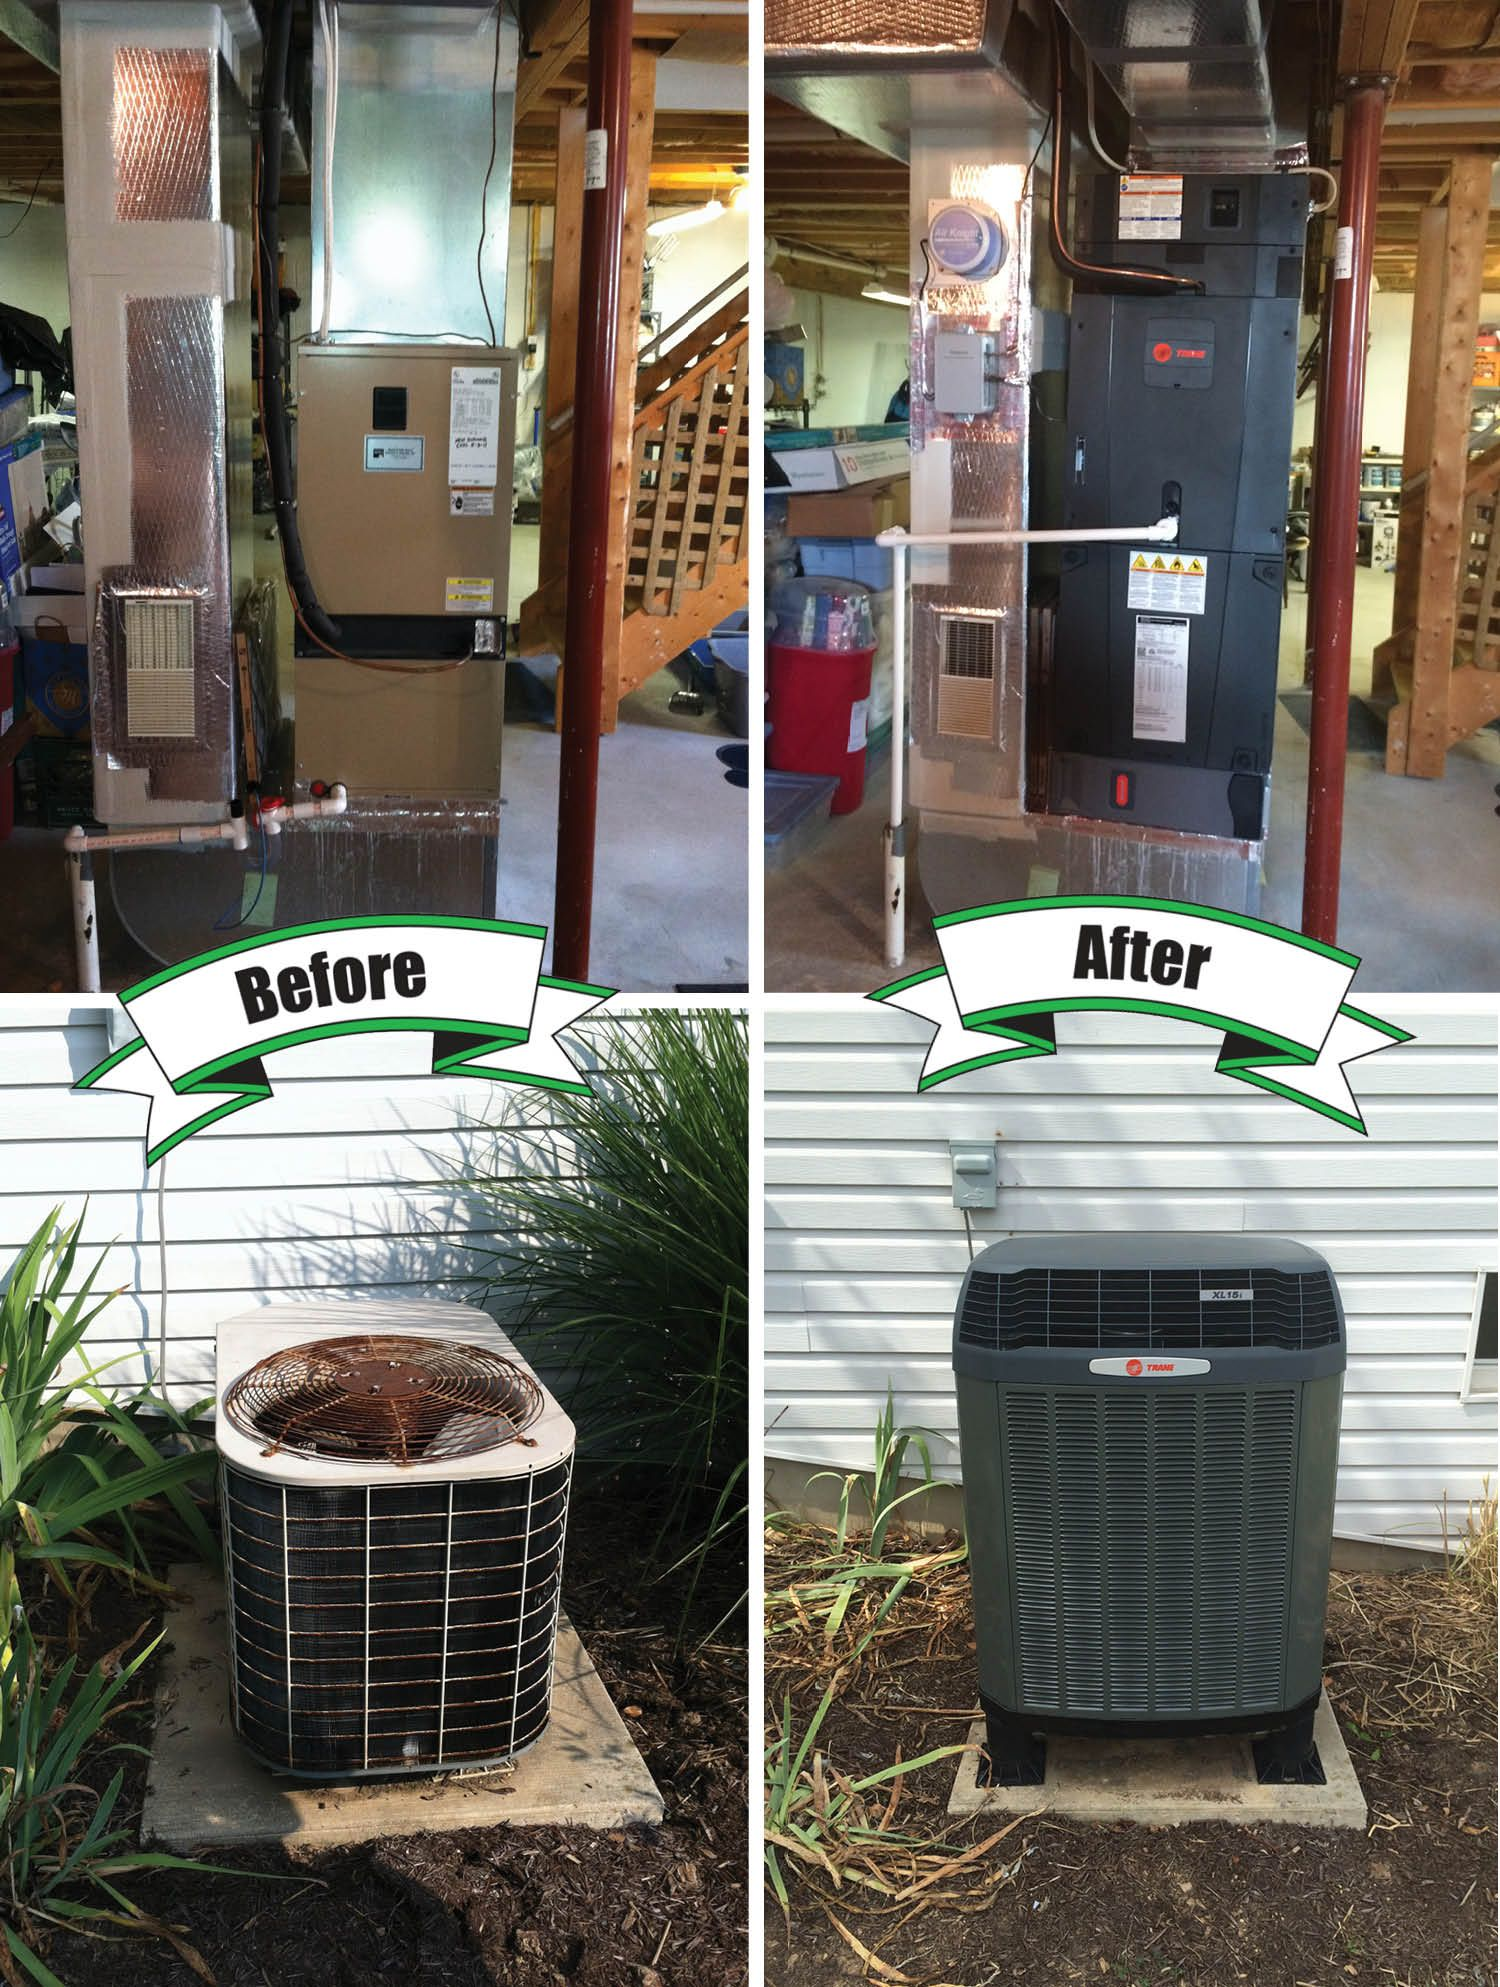 Holtzopleheatingandairconditioning Trane Beforeandafter We Can